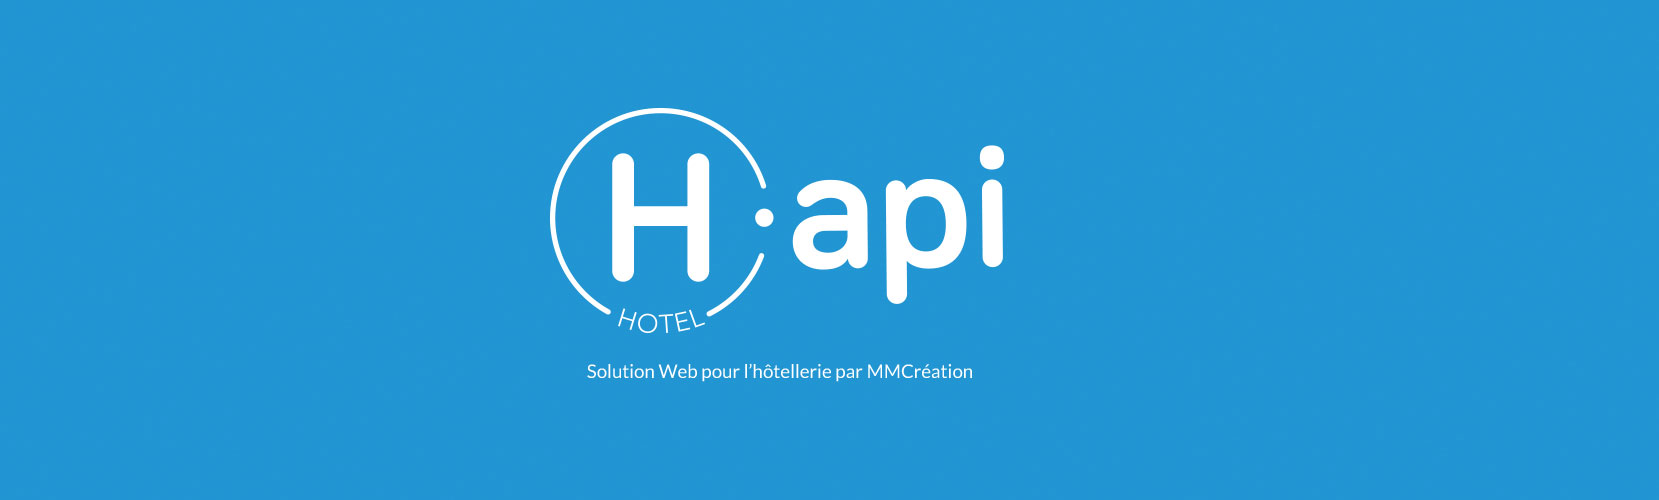 Agence Web Sites Hoteliers